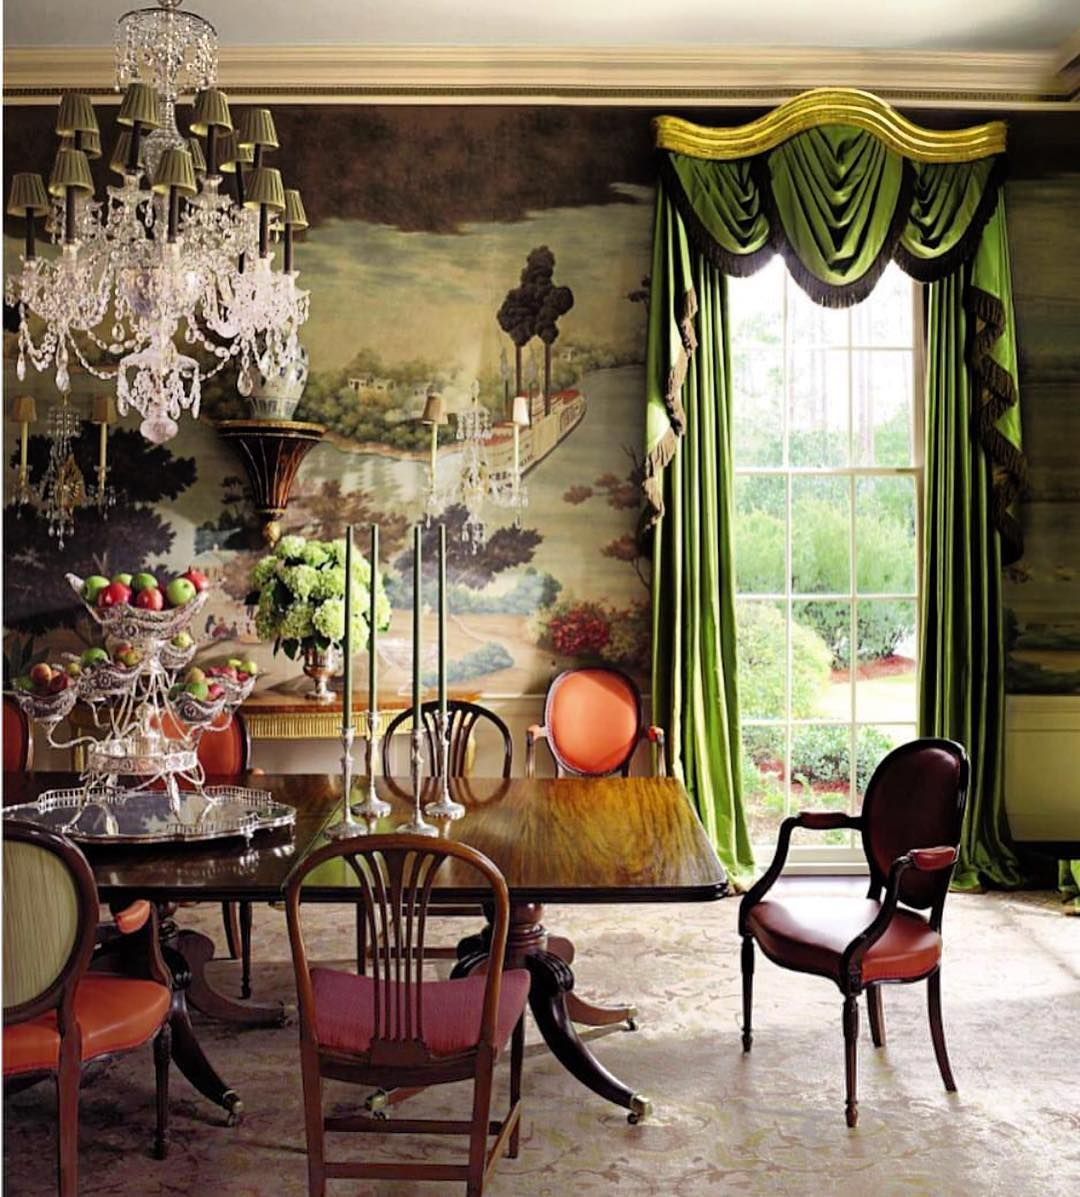 One of THE GREAT rooms by that wellknown GREAT man